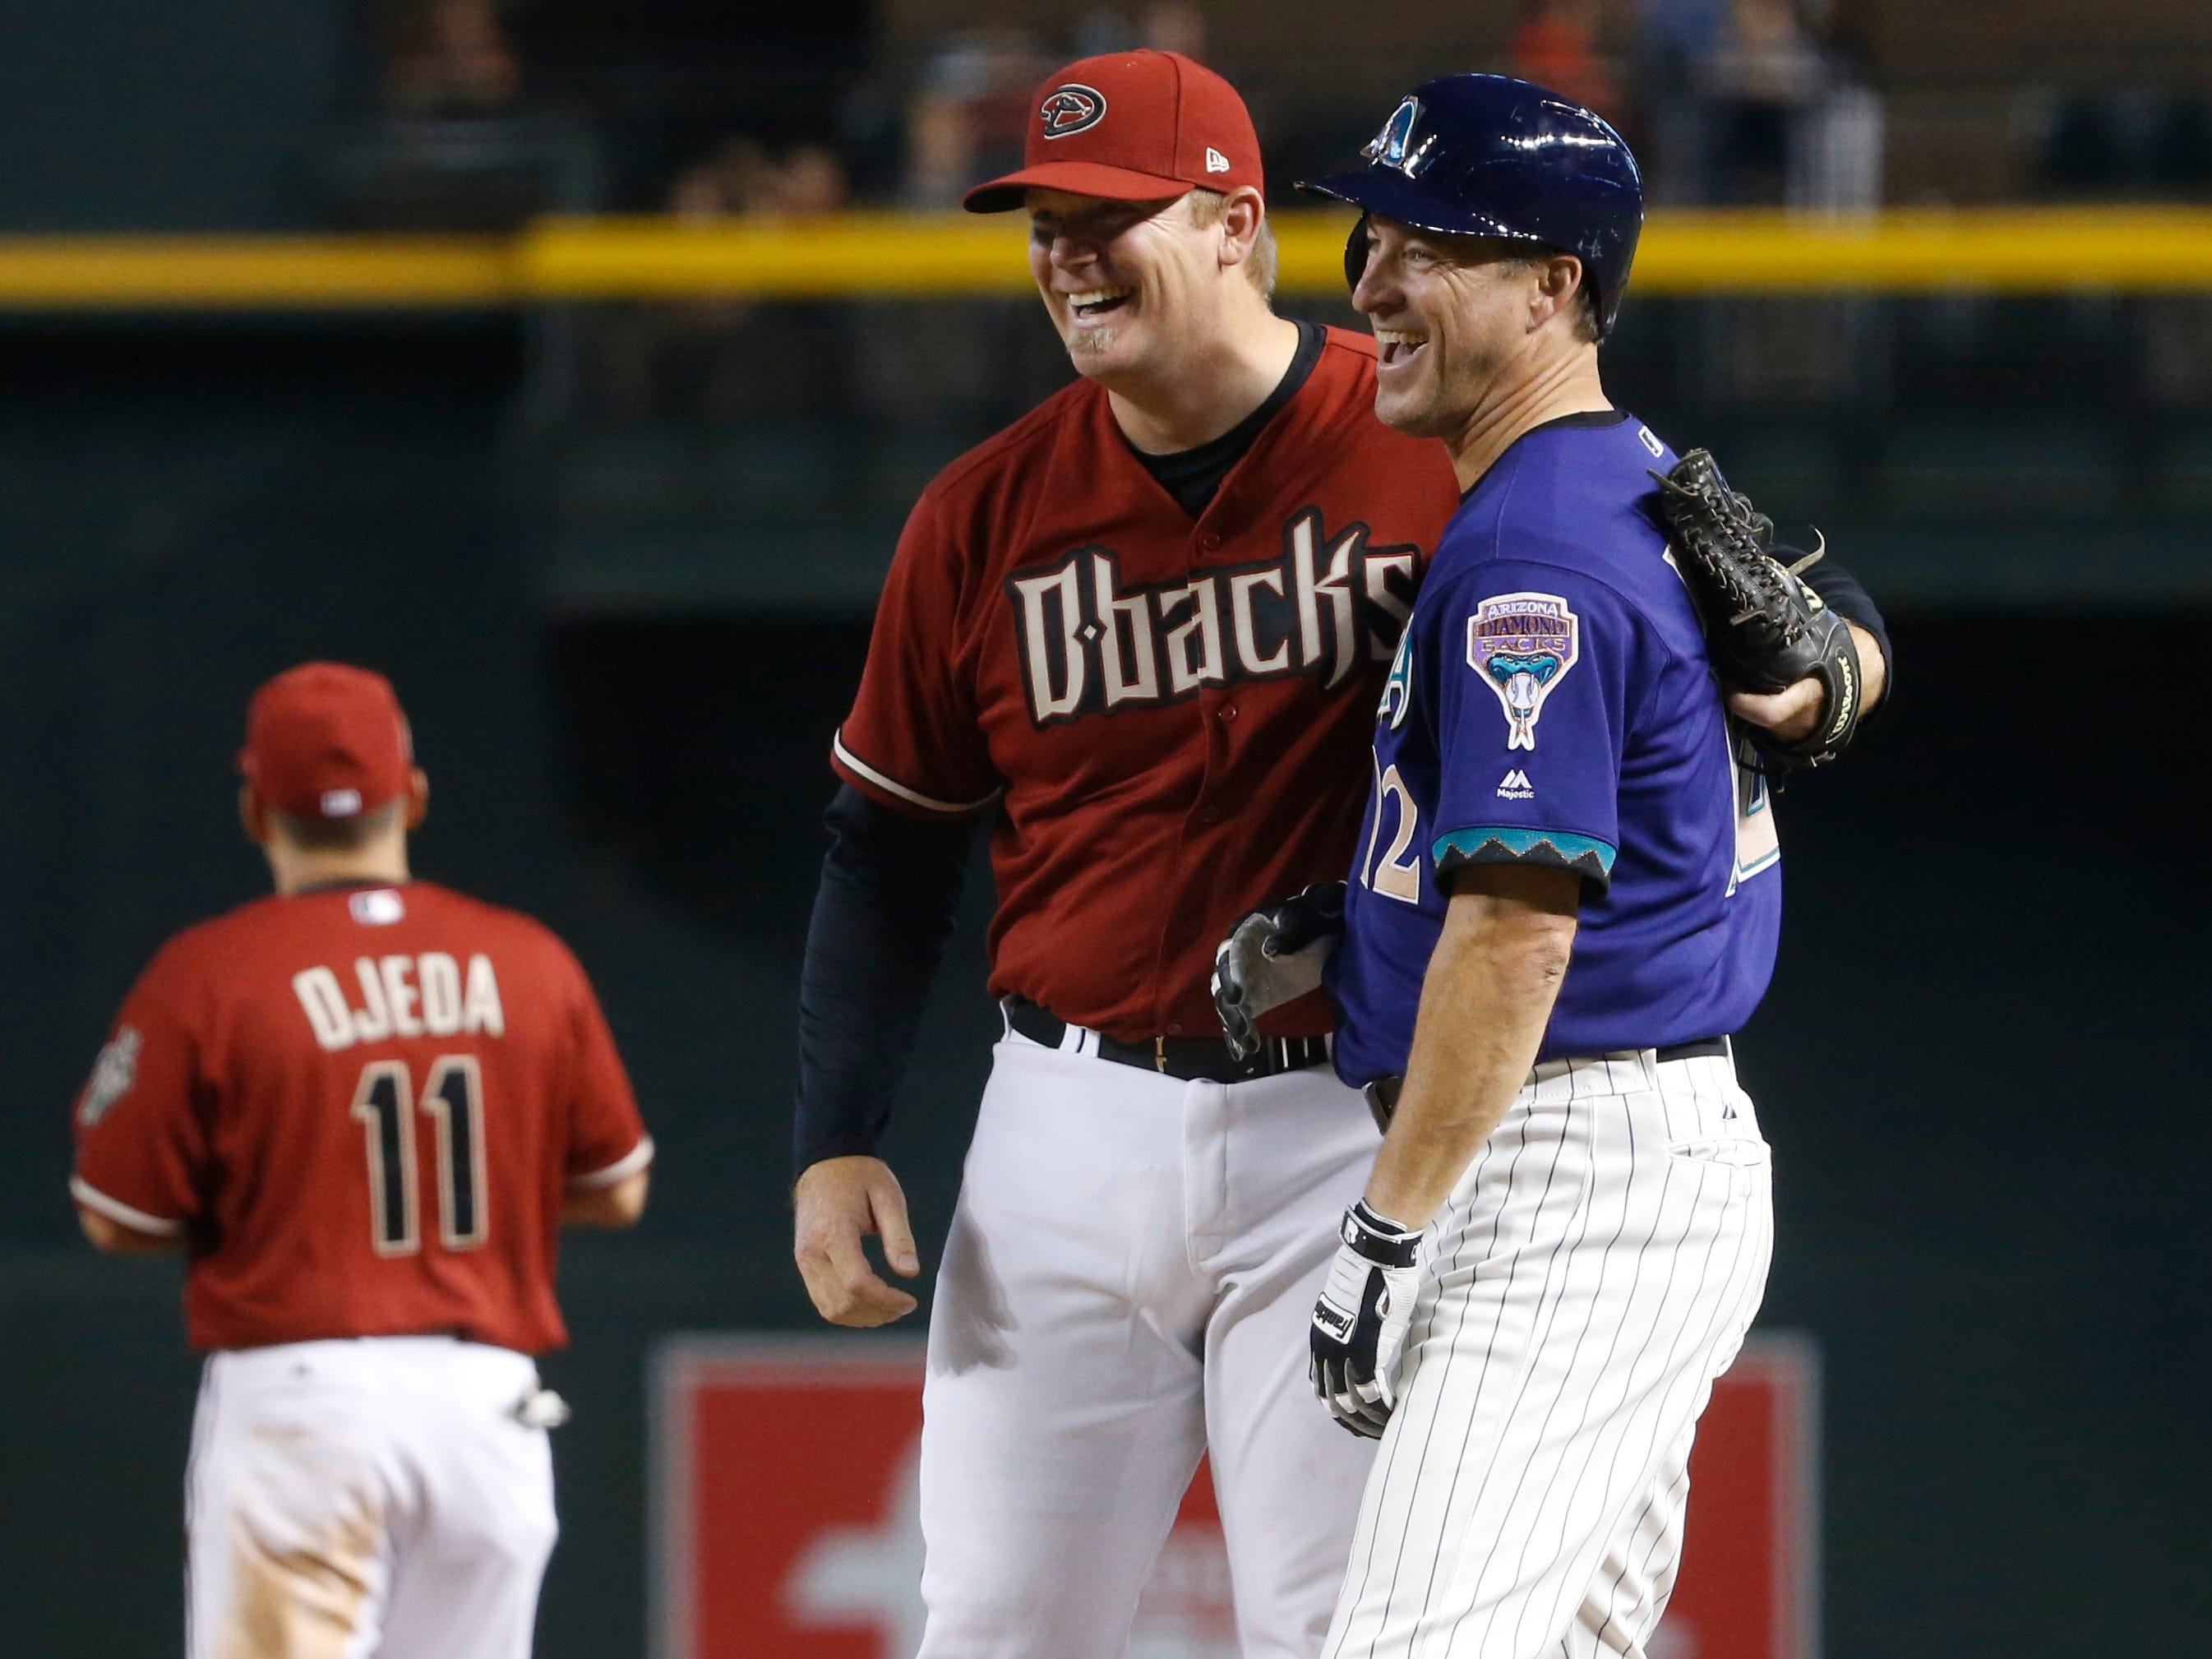 Diamondbacks Red team's JJ Putz (L) hugs Purple team's Steve Finley (12) after Finley beat a throw of Putz's to first base during the Generations Diamondbacks Alumni game at Chase Field in Phoenix, Ariz. on Aug. 4, 2018.